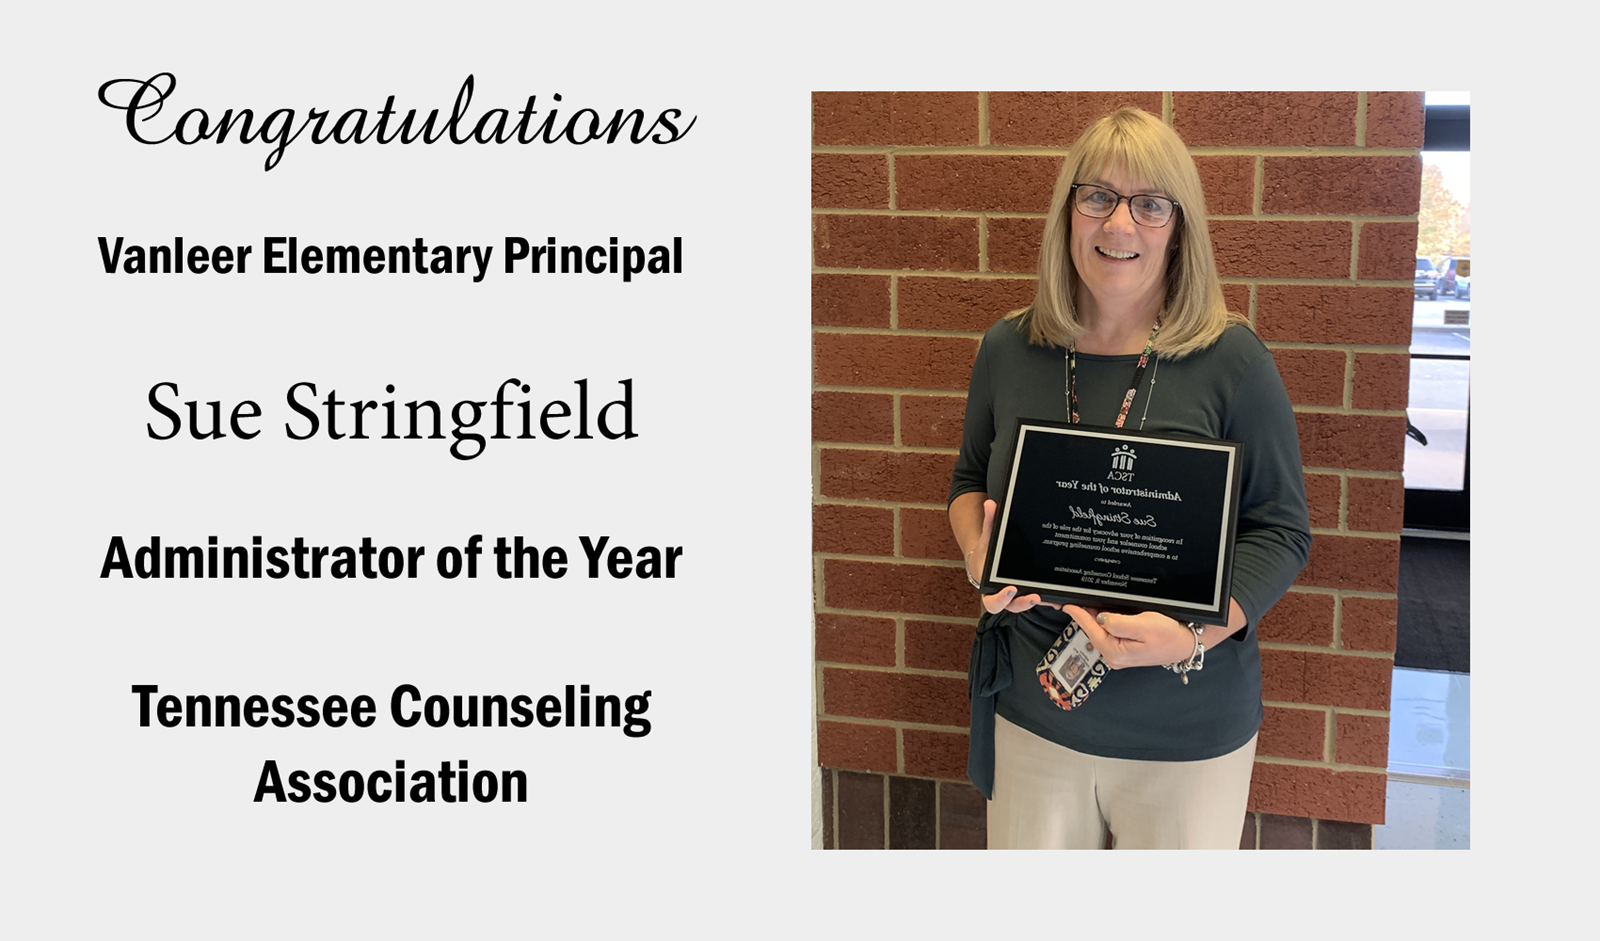 Sue Stringfield Administrator of the Year